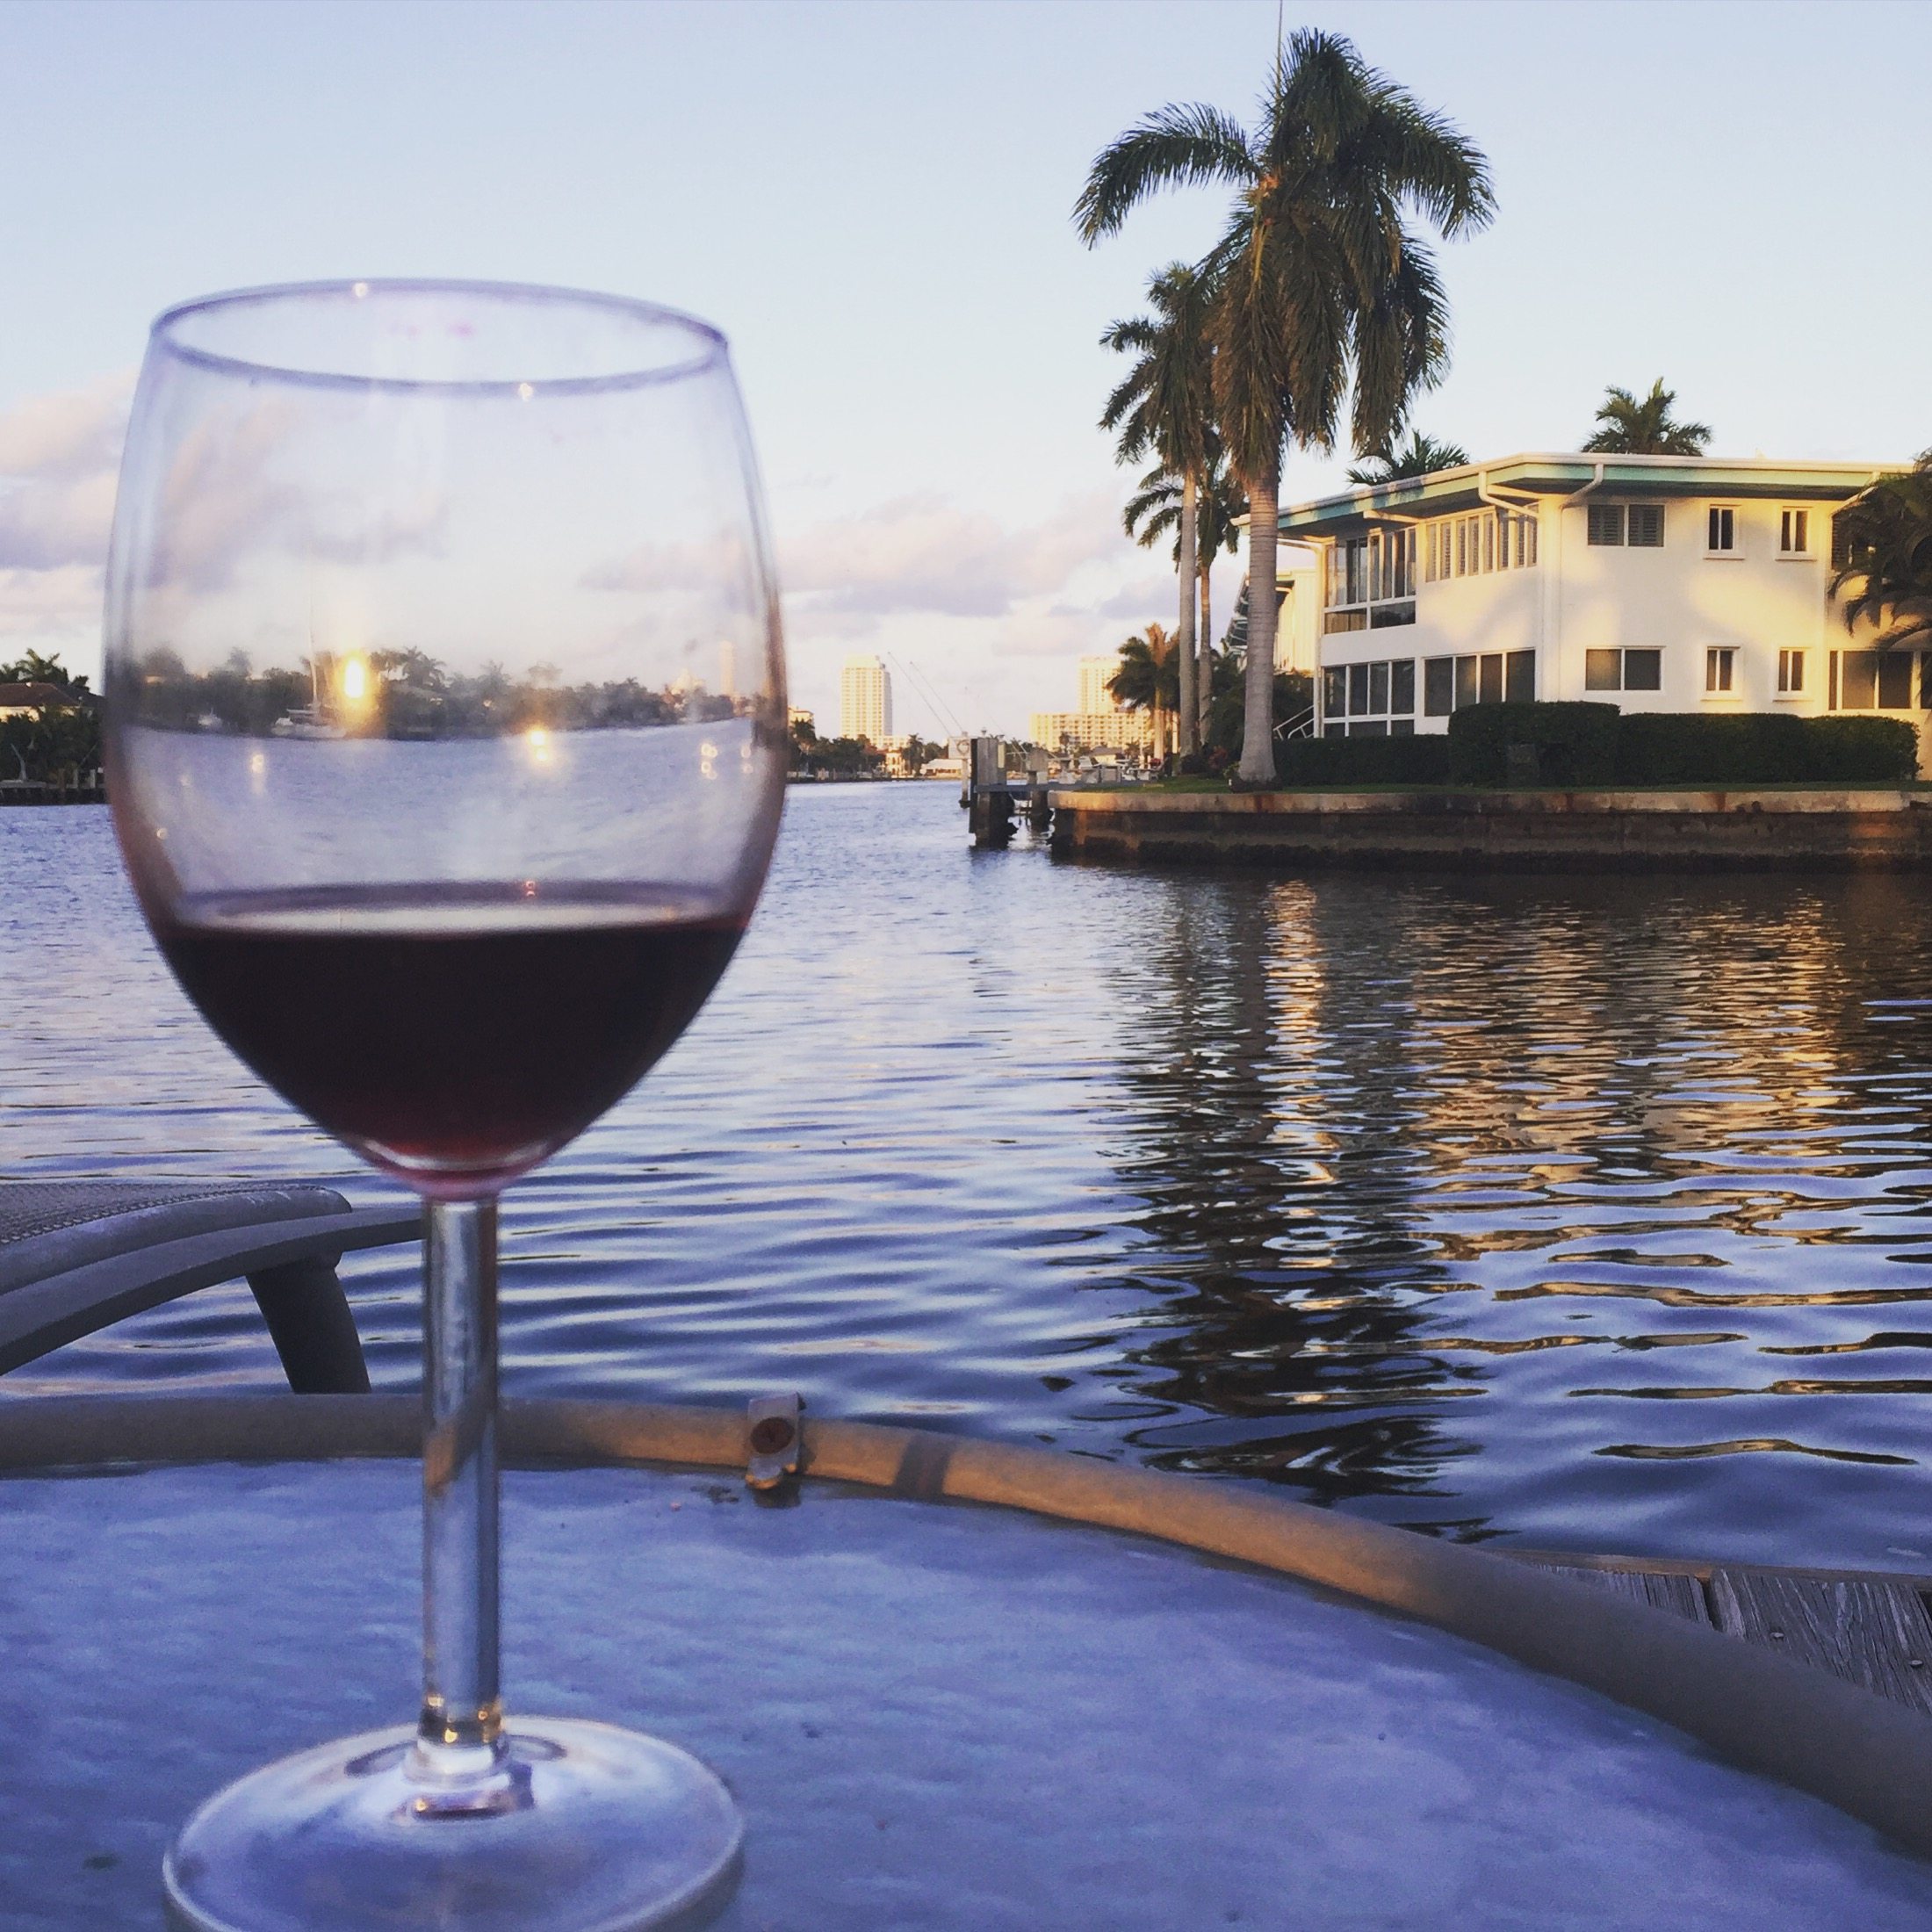 Fort Lauderdale: Paddle Board Vacation